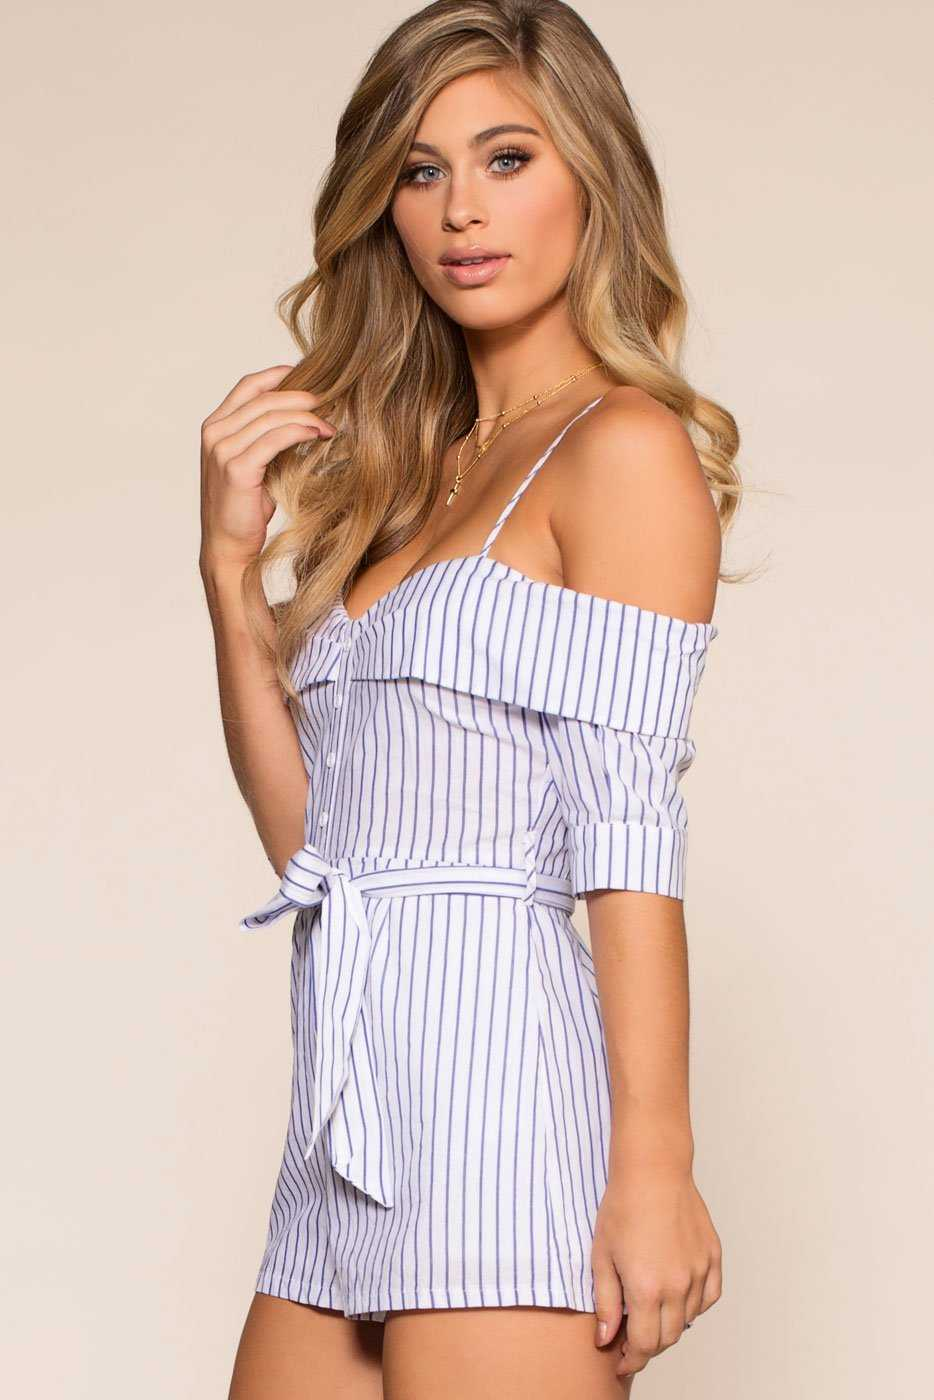 Rompers - Little Miss Sunshine Romper - White